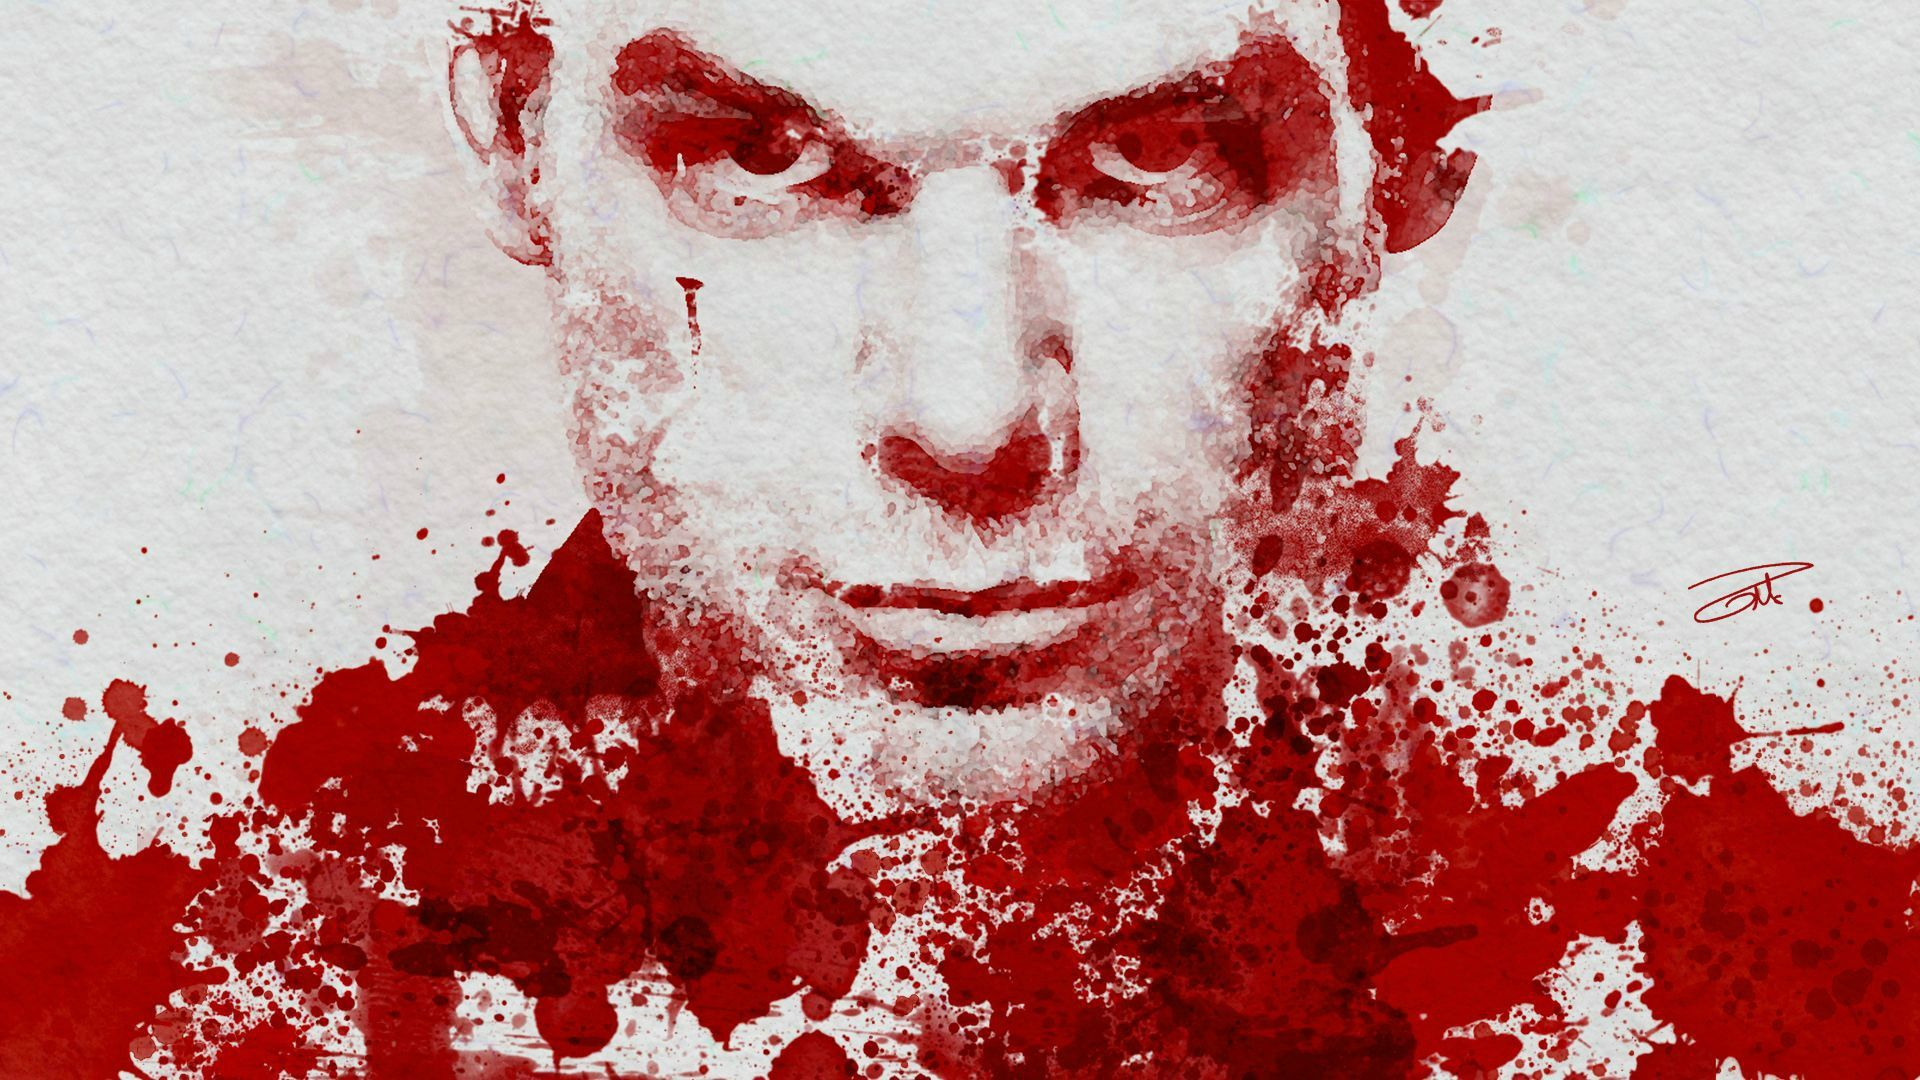 Dexter Wallpaper 393 Xe Wallpaperxe Com Dexter Wallpaper Dexter Android Wallpaper